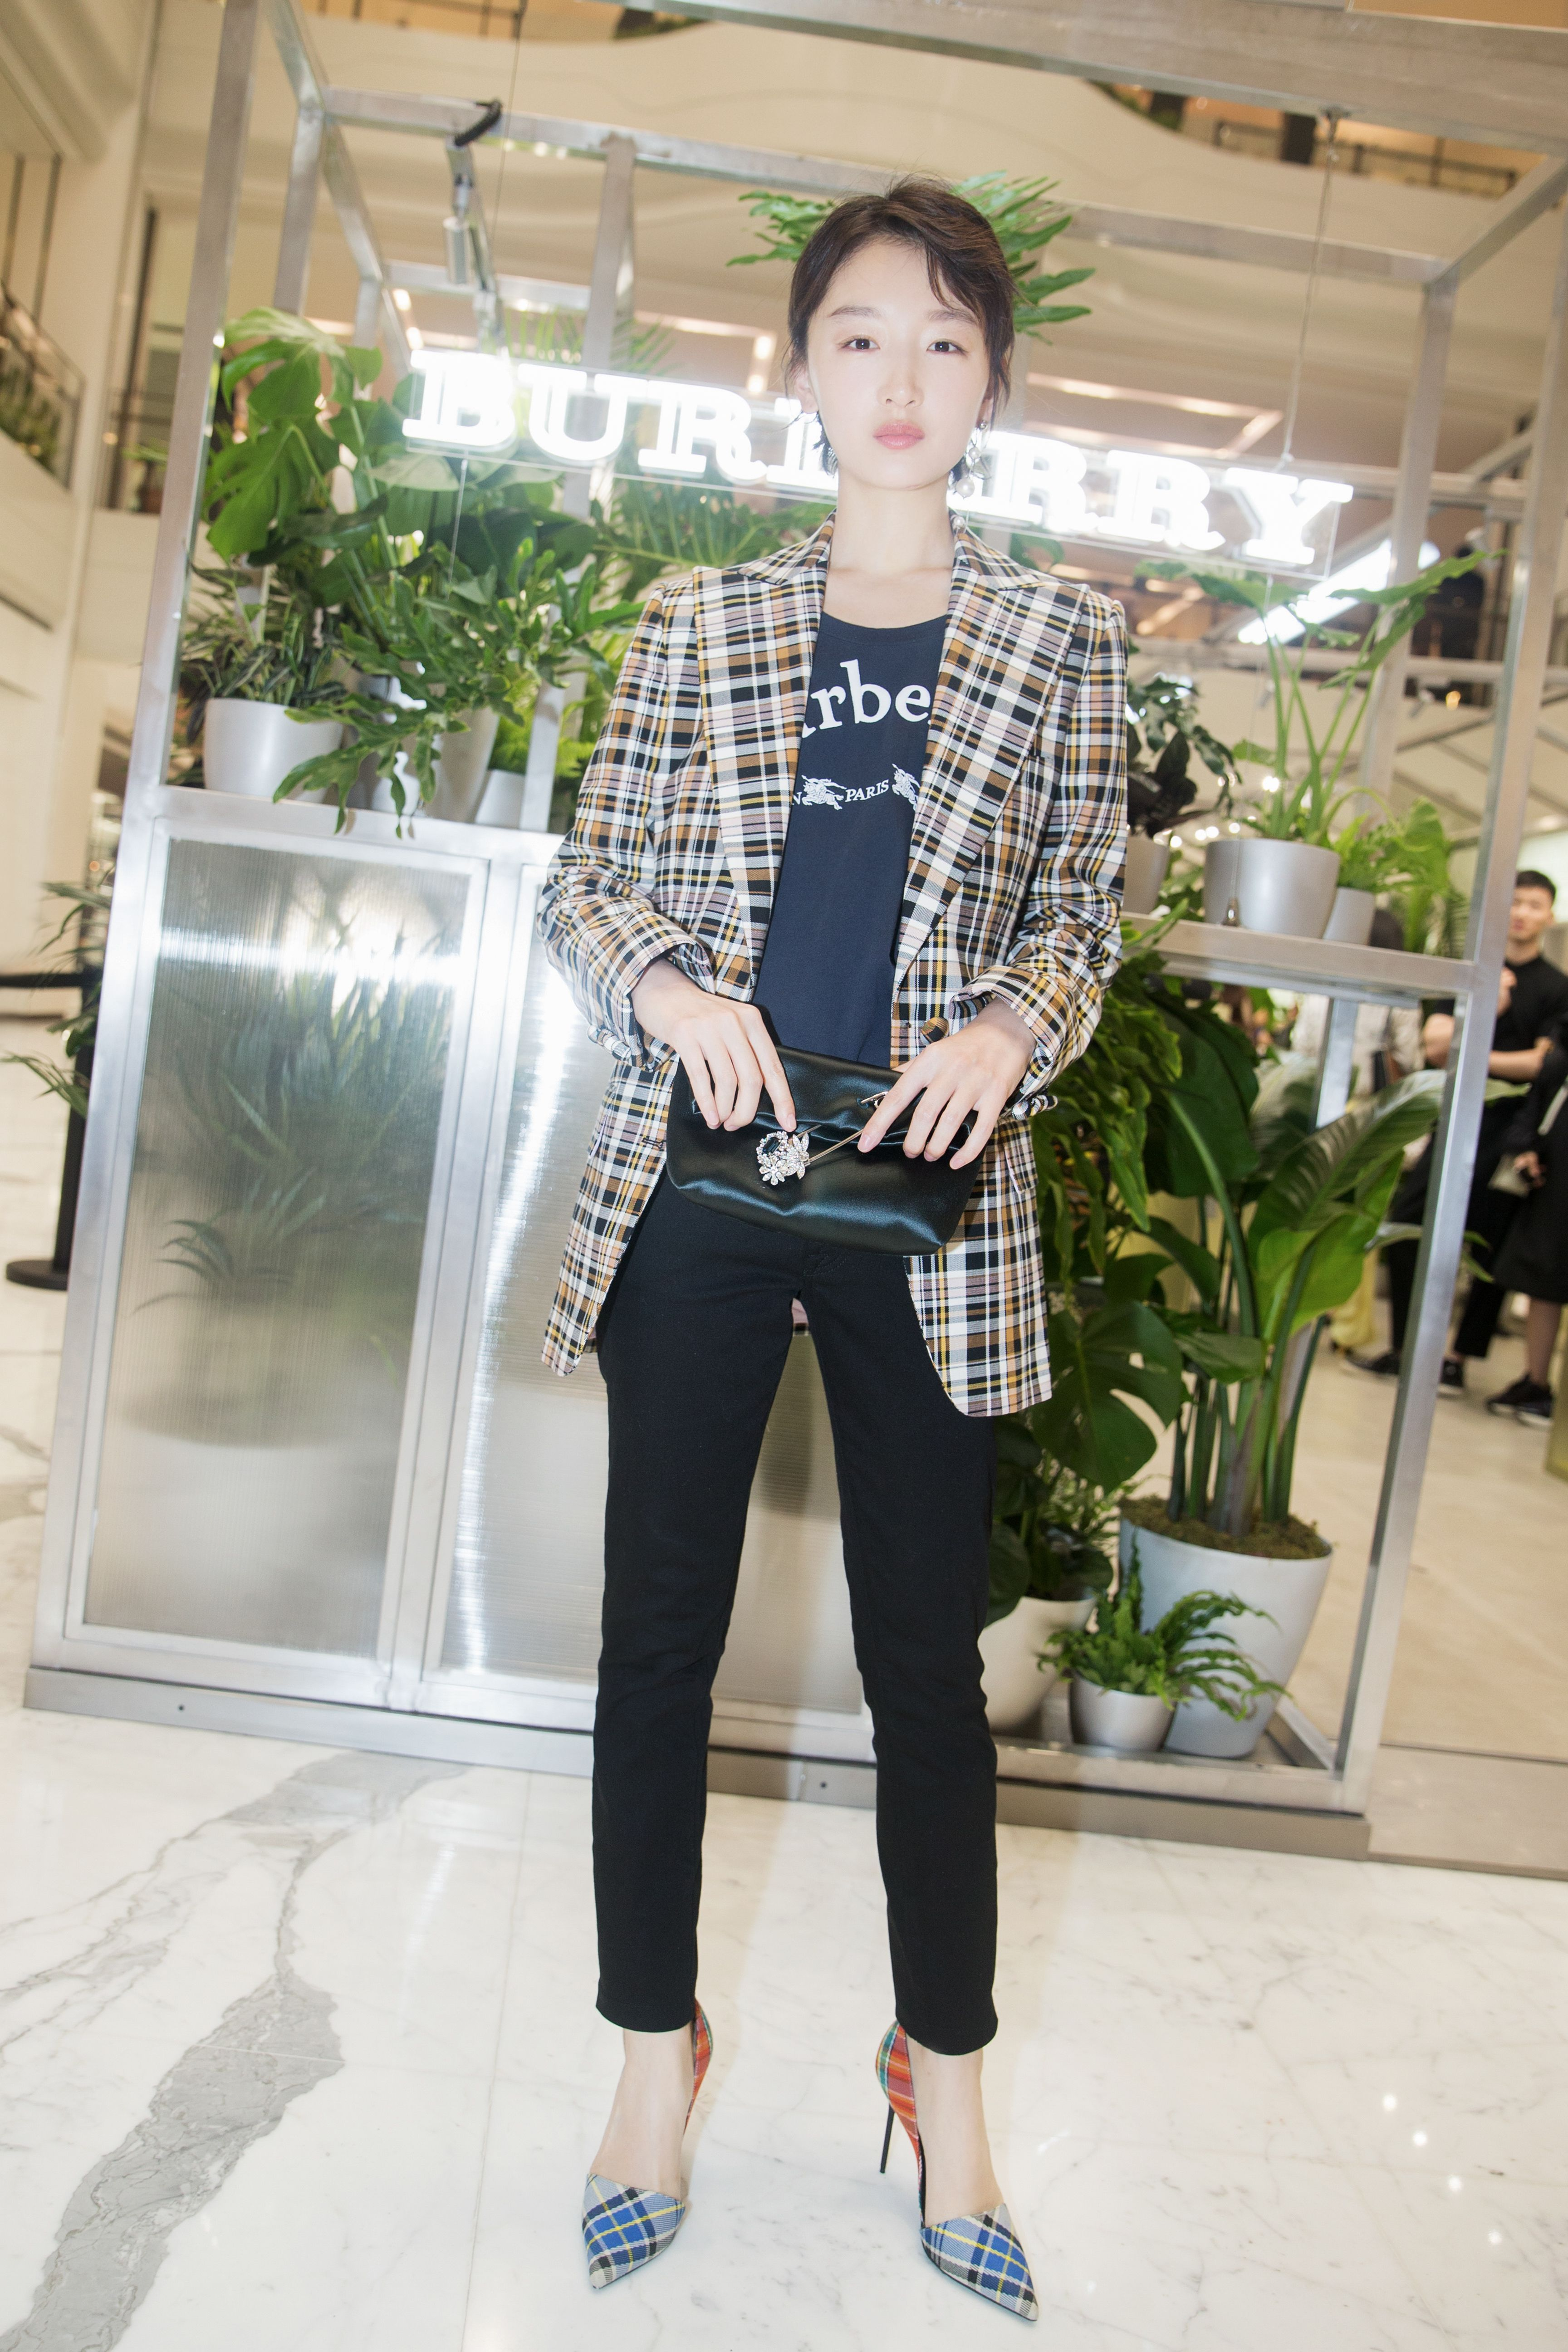 0b745c4d437fb  ZhouDongyu wears  Burberry to celebrate the opening of   TheBurberryConservatory in Beijing